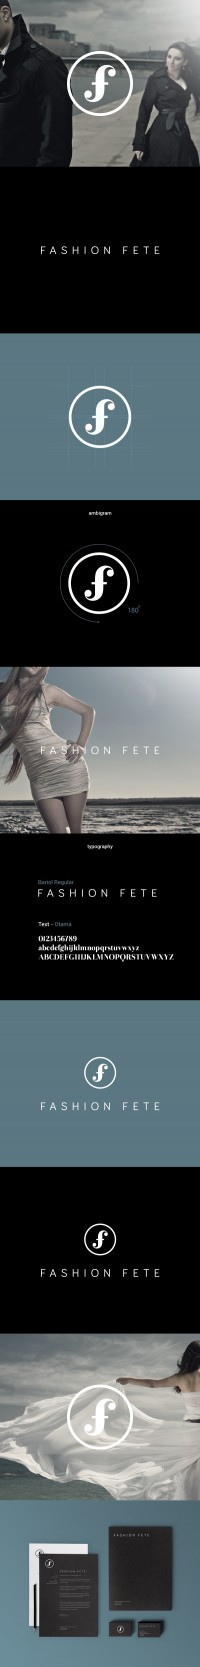 Fashion Fete | Branding on